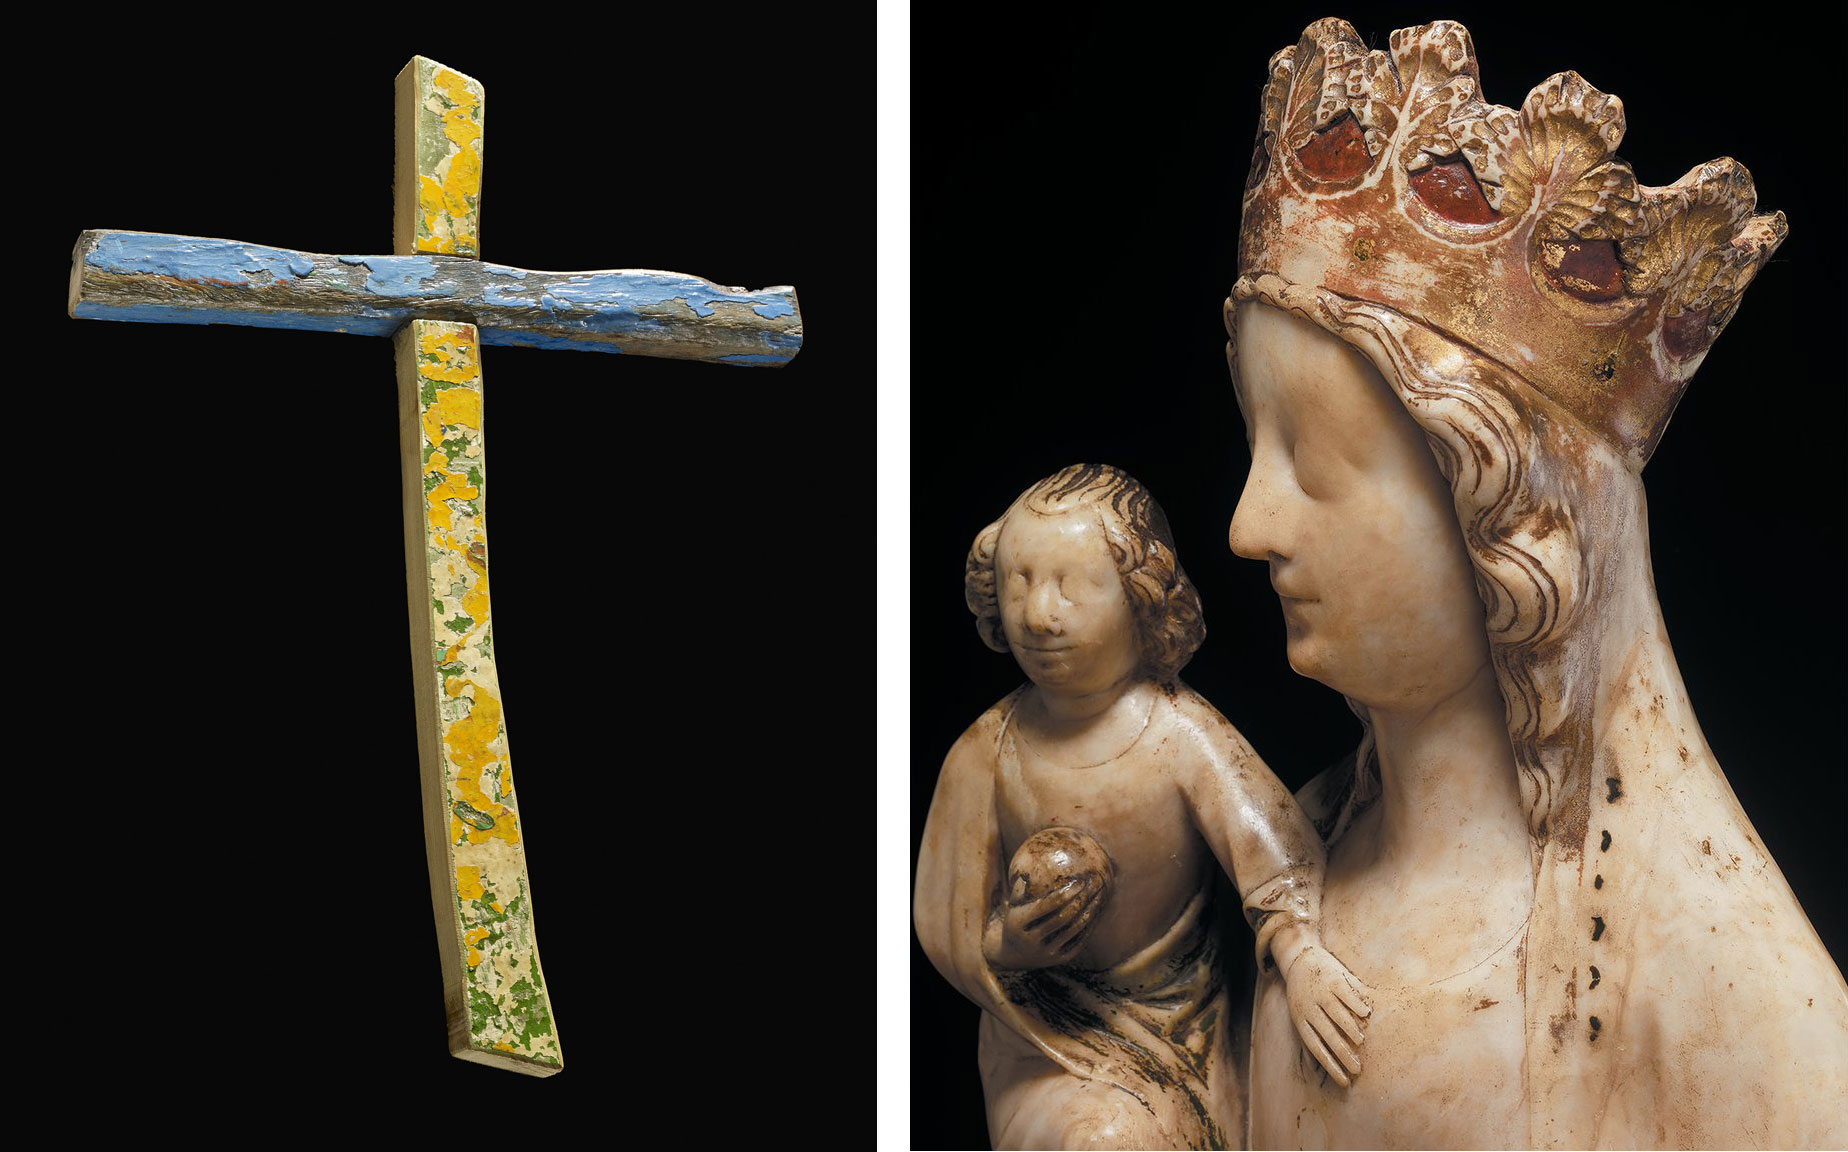 Left: The Lampedusa Cross acquired in 2015. Right: detail of the alabaster Virgin and Child, made in the Midlands, c. 1360s.